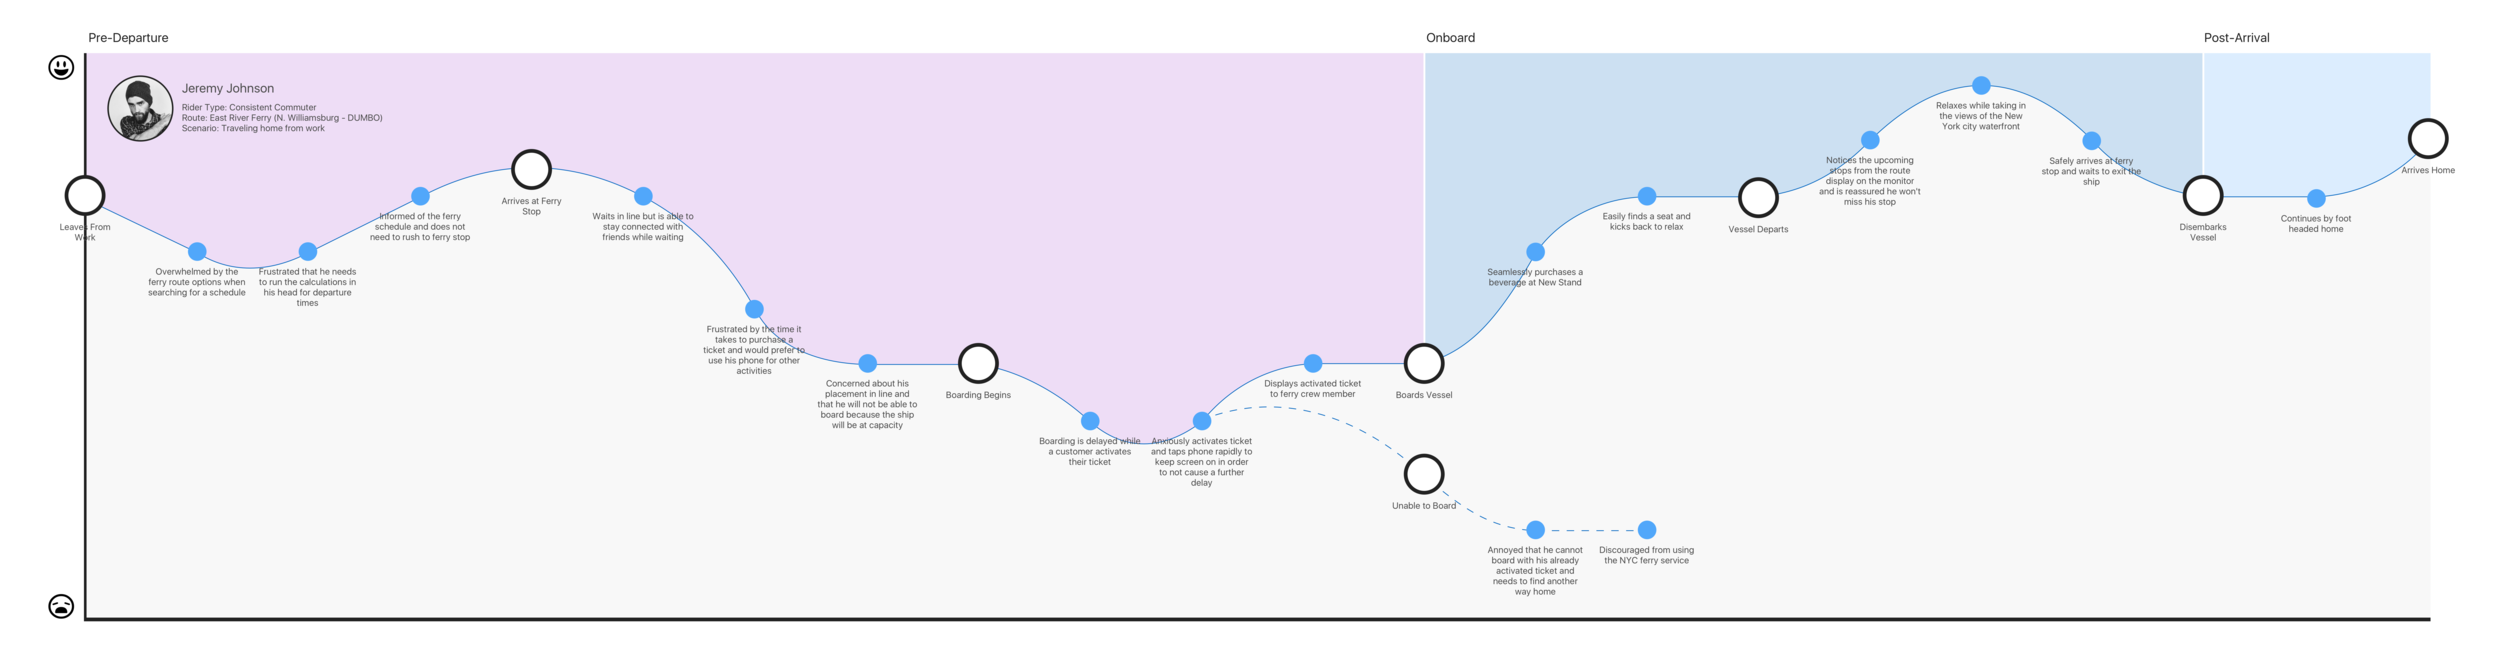 MAP OF THE EMOTIONAL USER JOURNEY